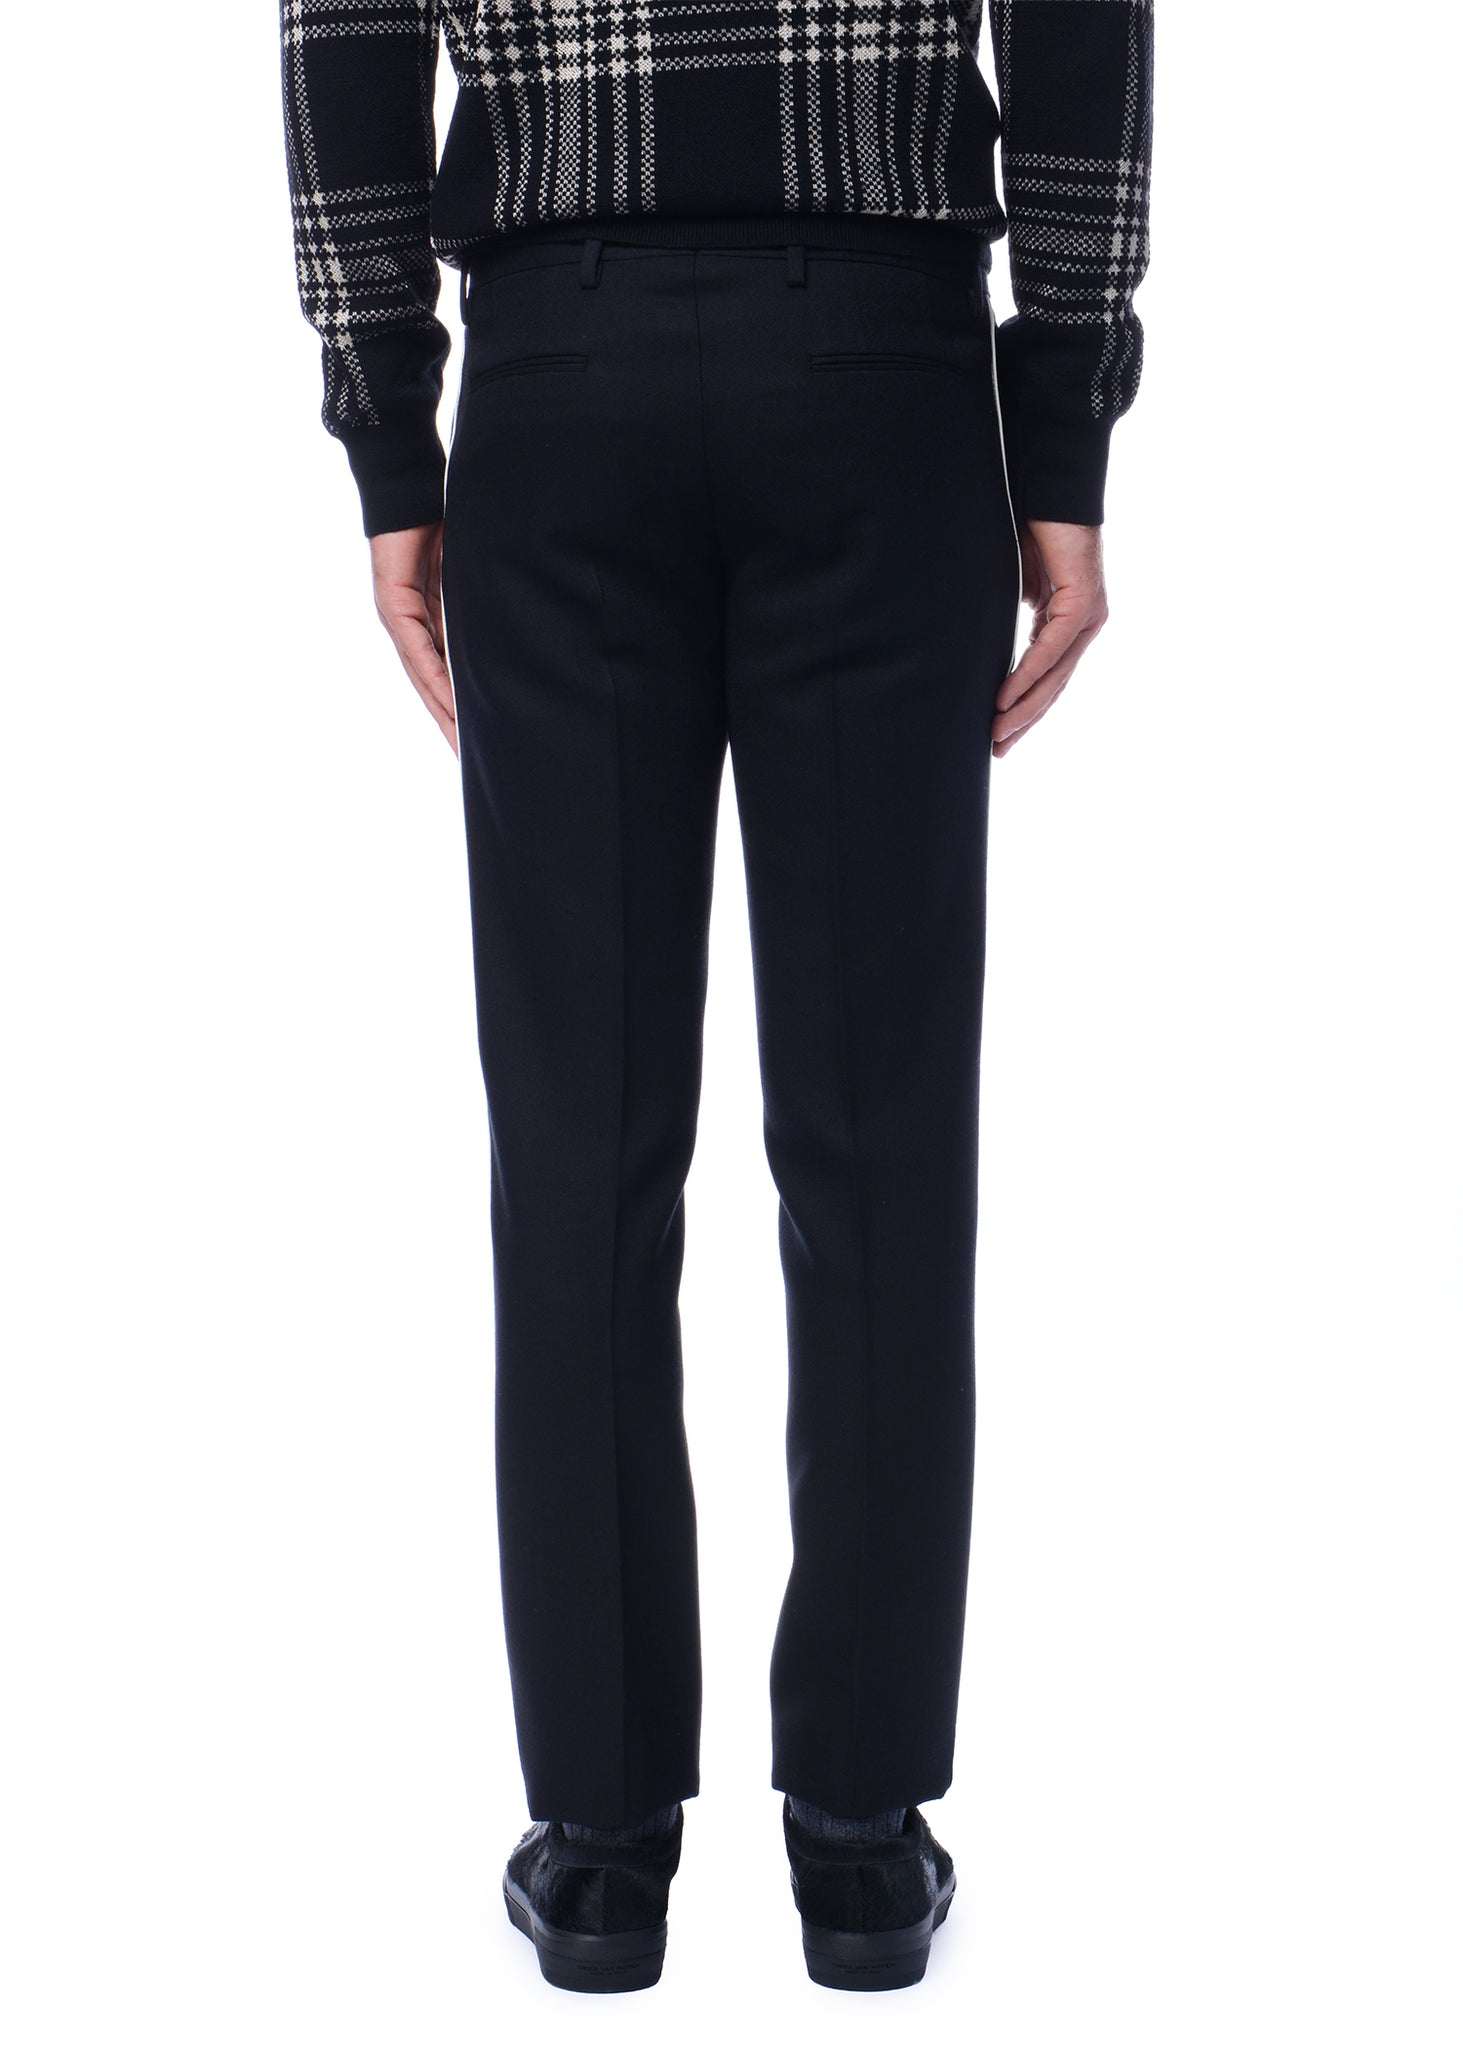 Pantalon noir|Black trousers